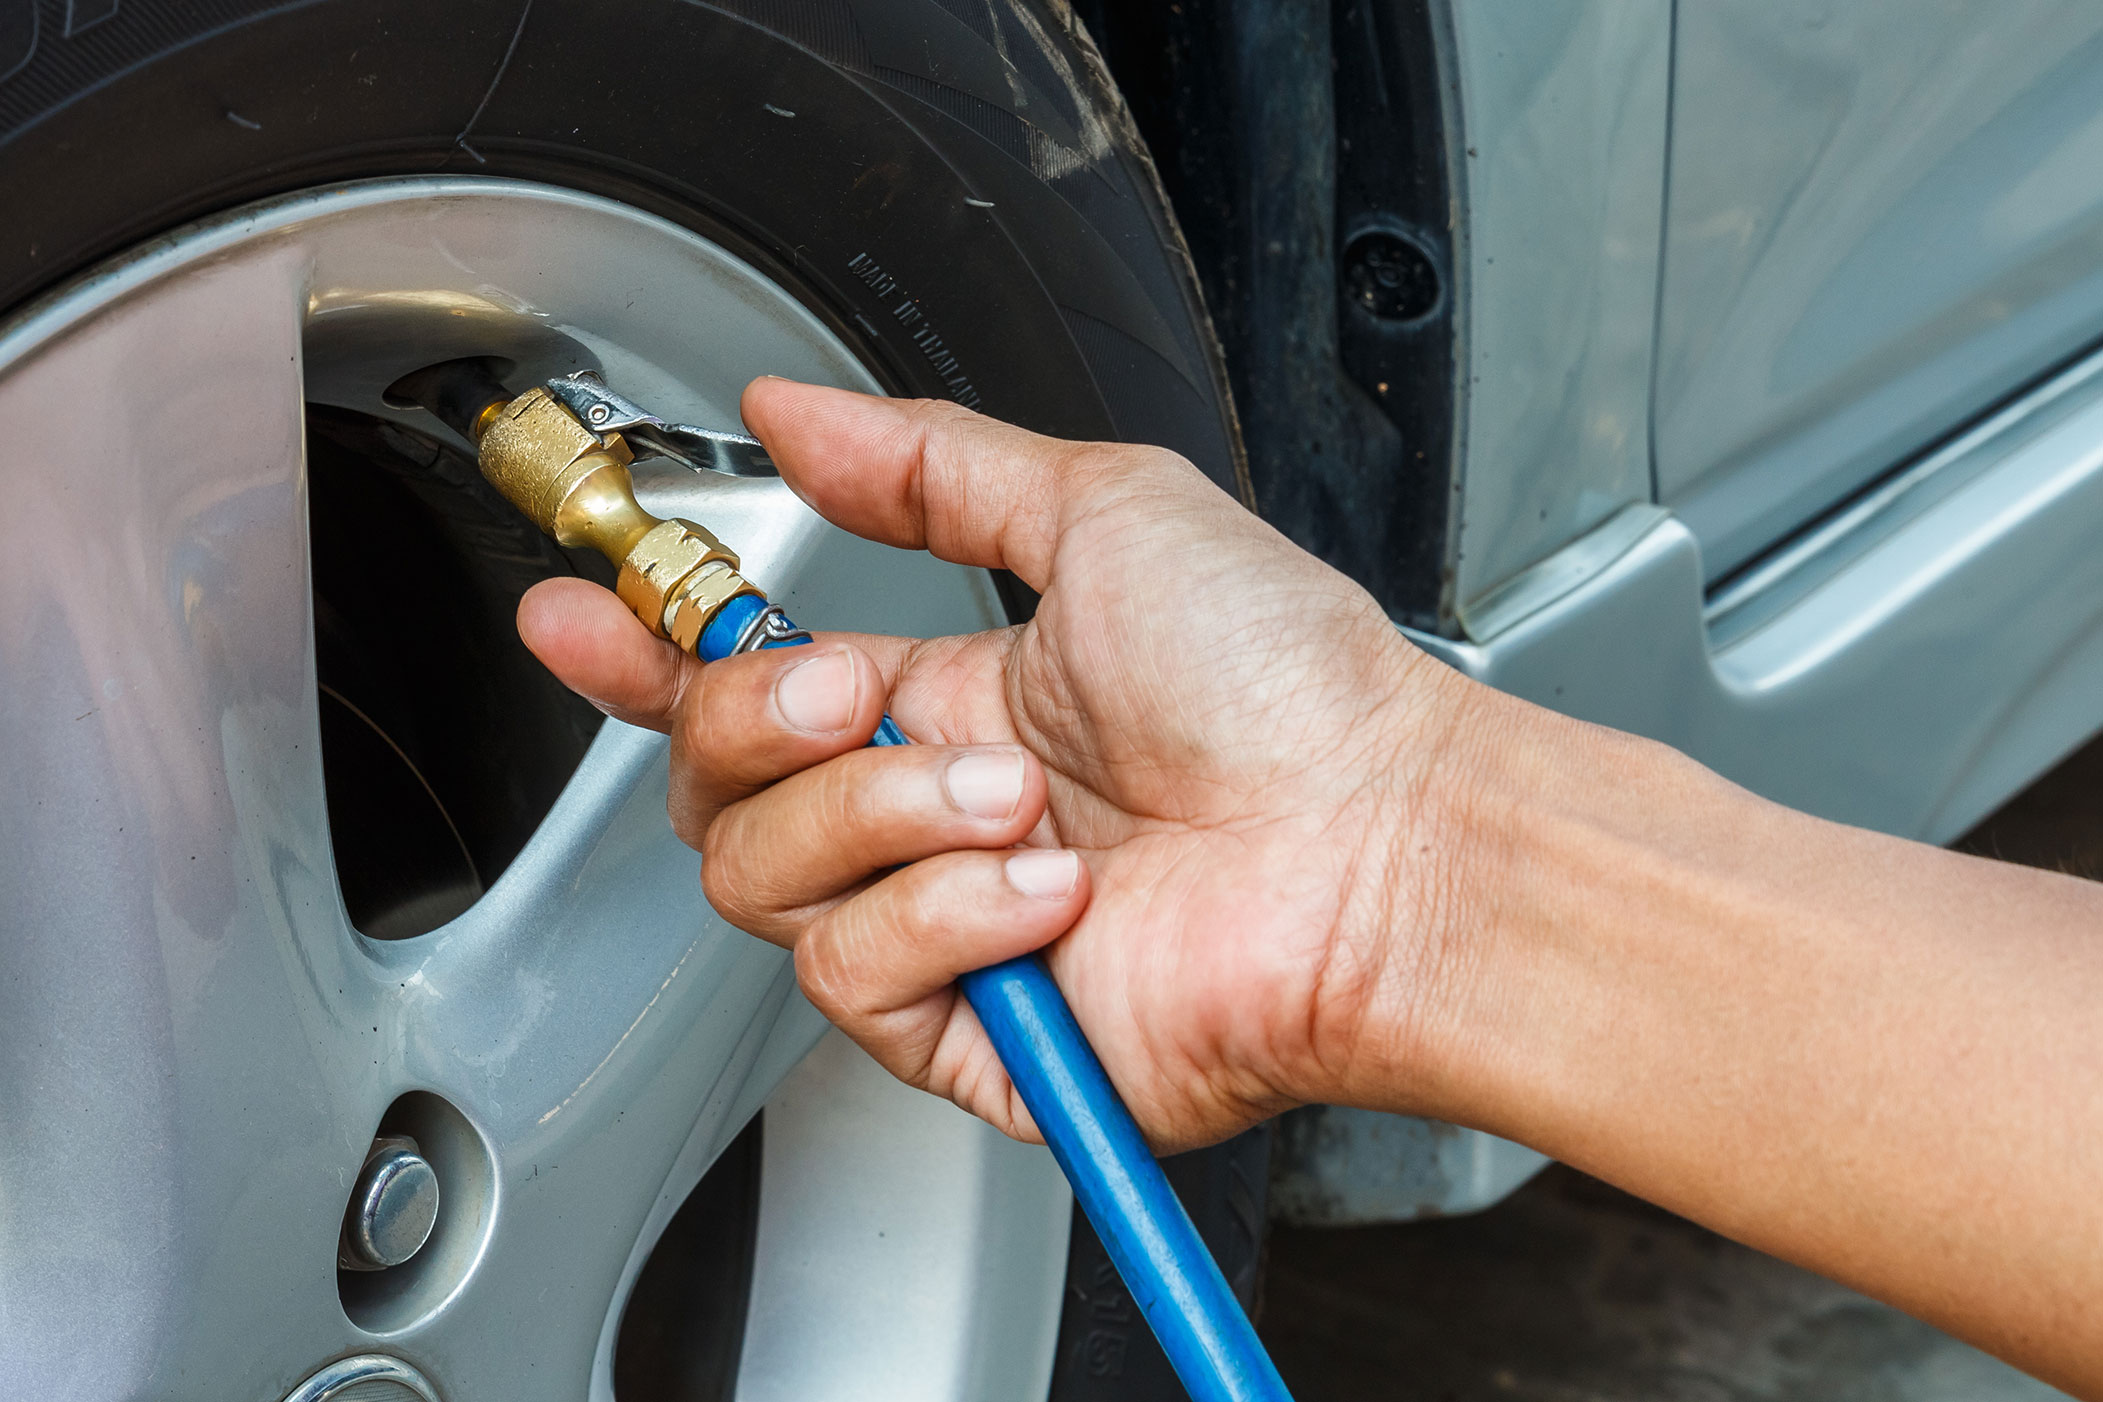 Inflating tyre with nitrogen